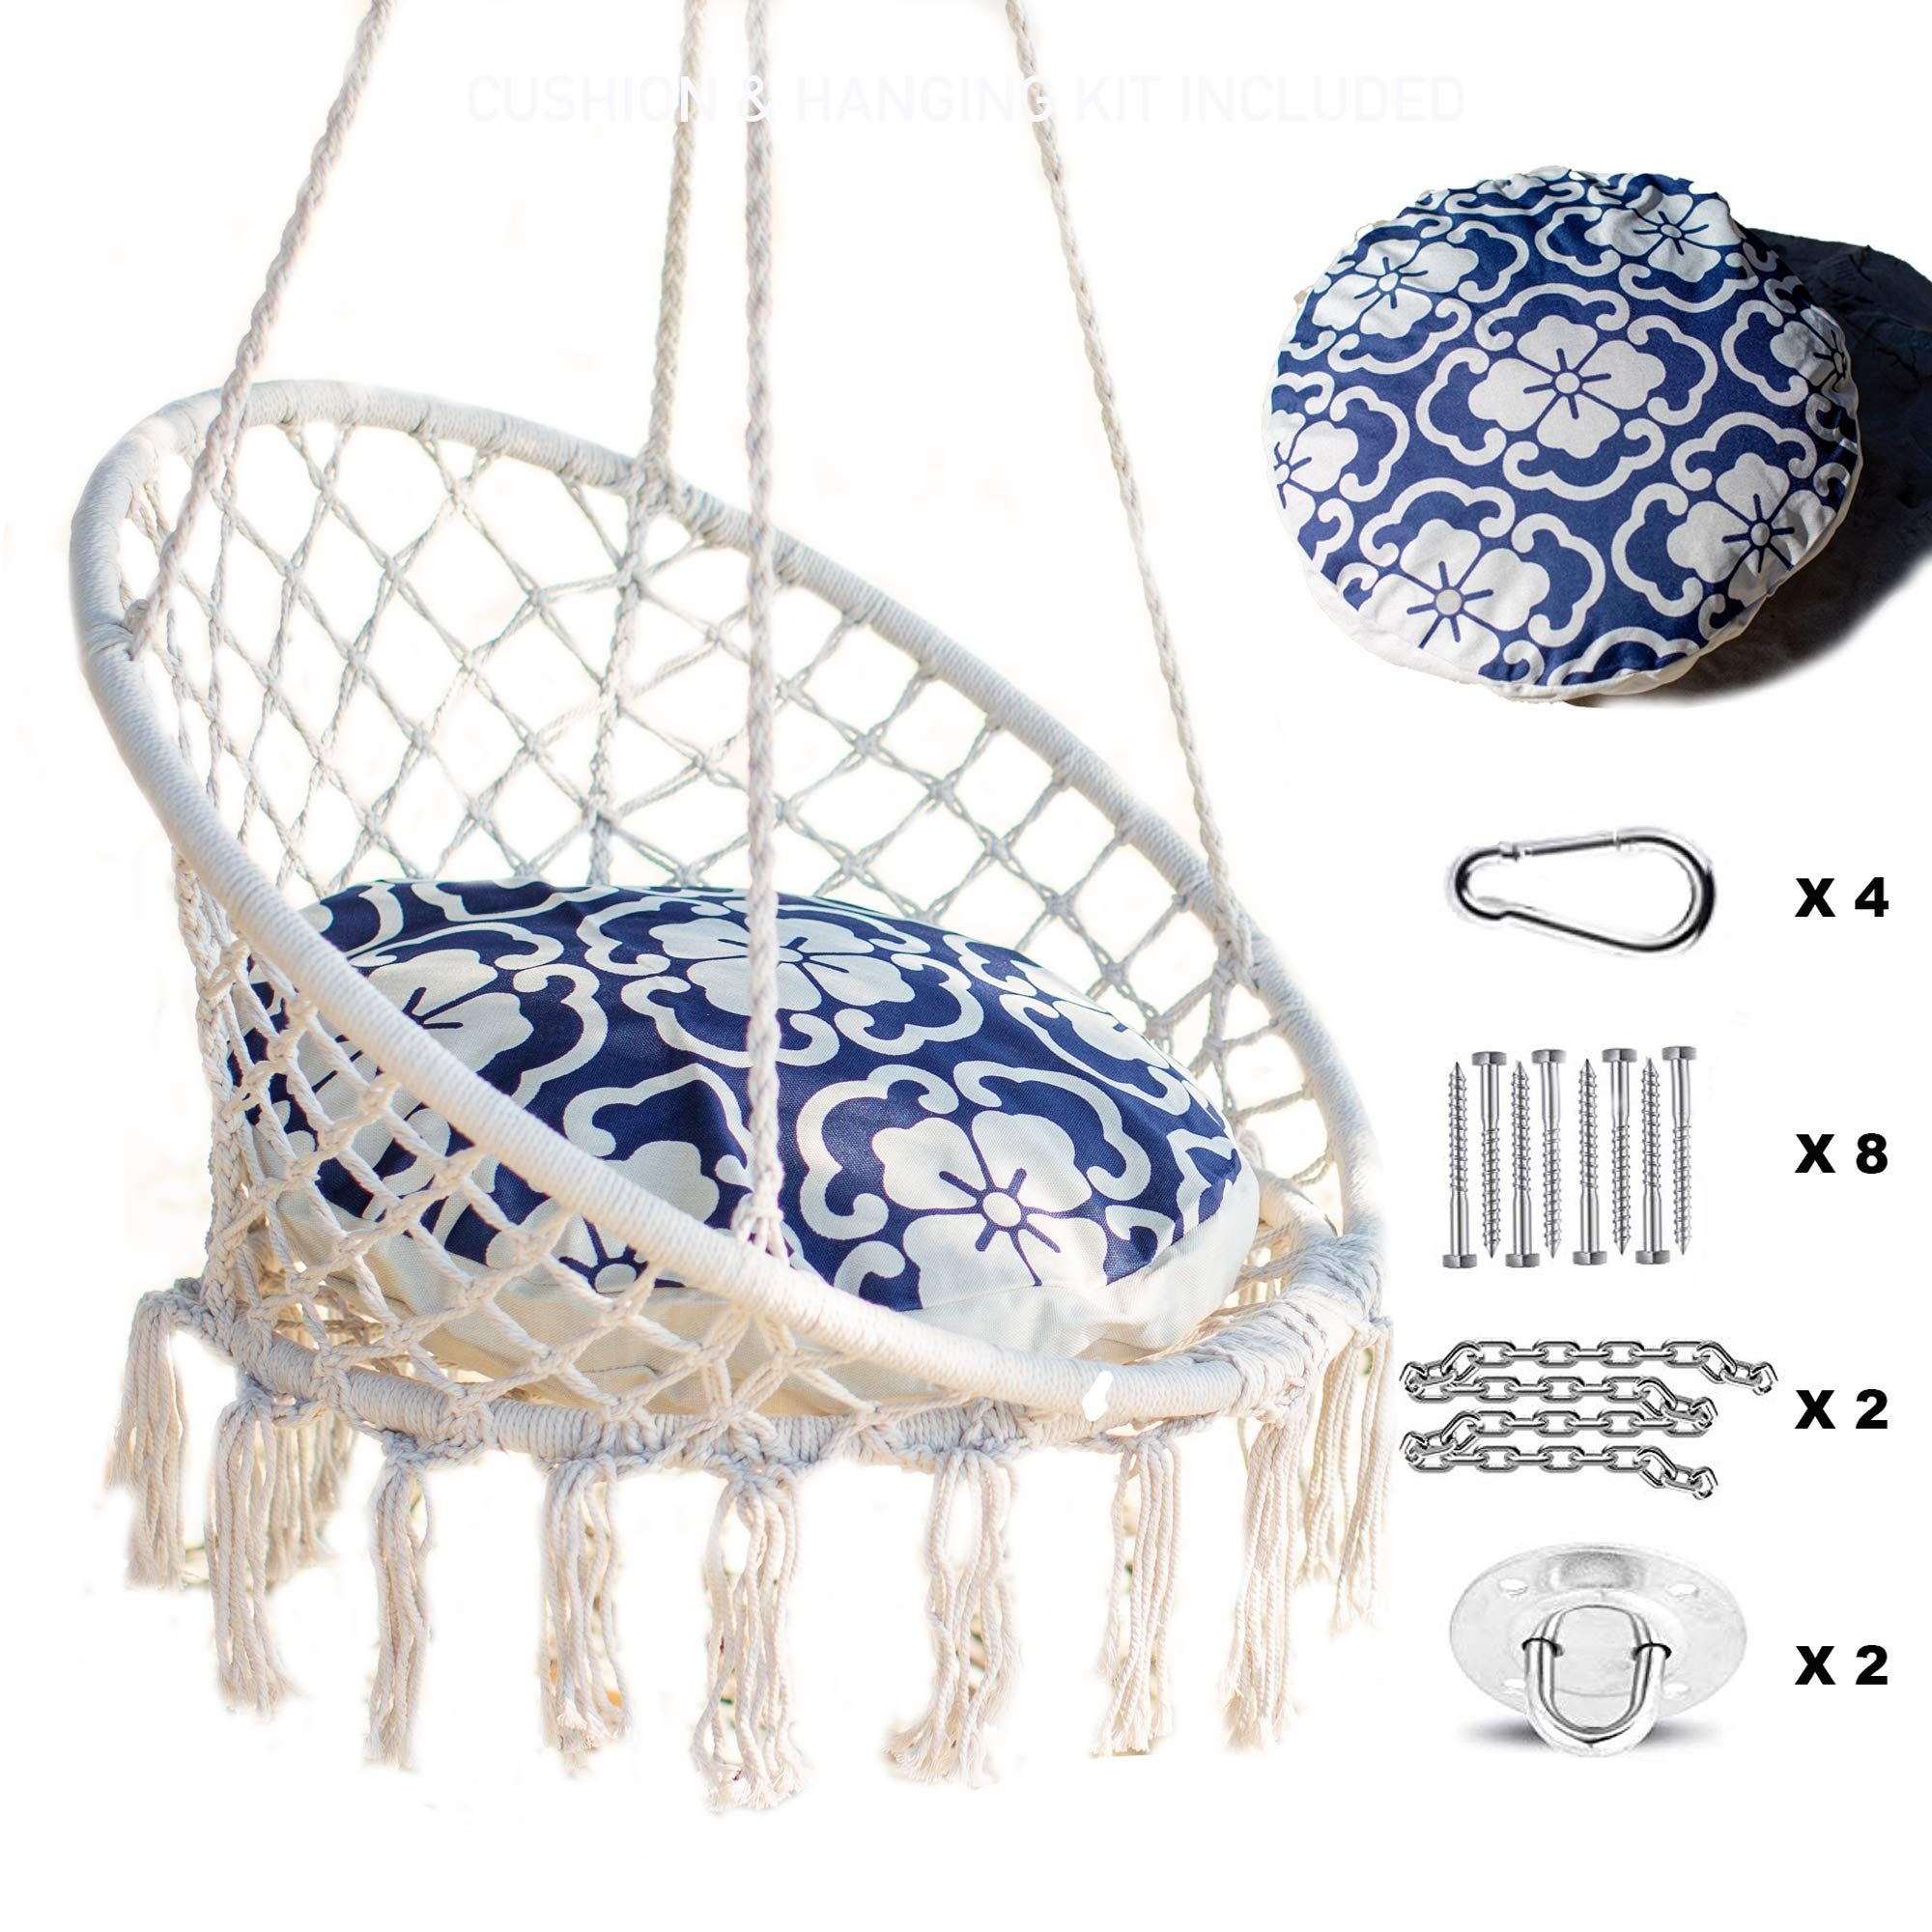 Nooksta Hammock Swing Hanging Chair Macrame Hanging Chair With Included Cushion For Hammock And Hanging In 2020 Hanging Chair Hanging Swing Chair Hammock Chair Stand